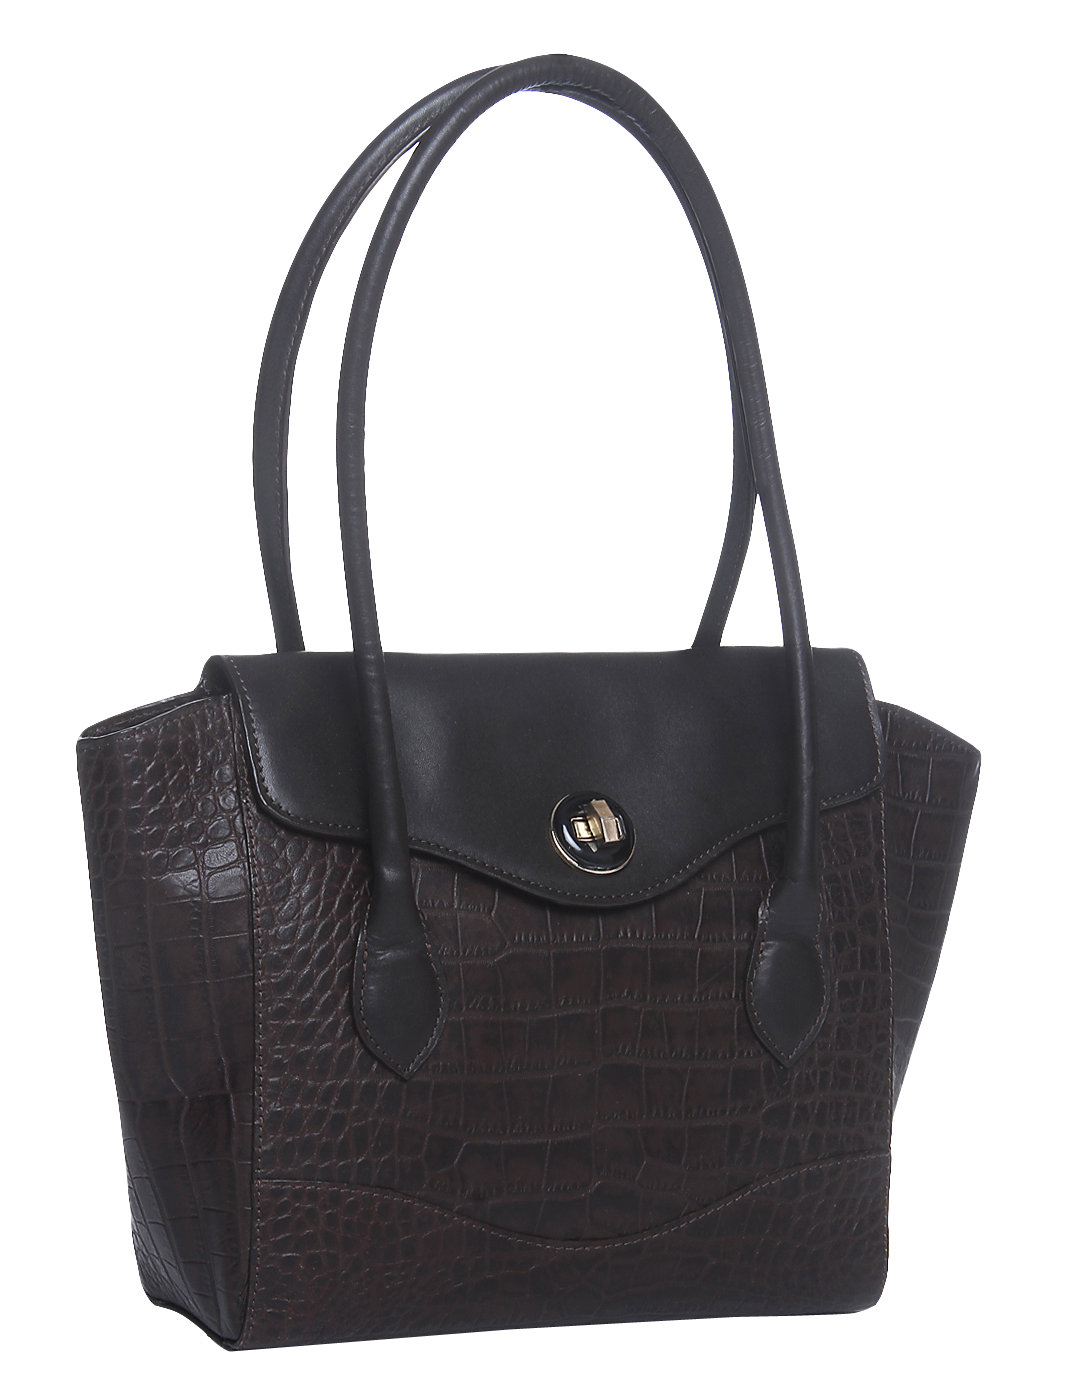 cef3d068b1 Leather Handbag PNG Image - PurePNG